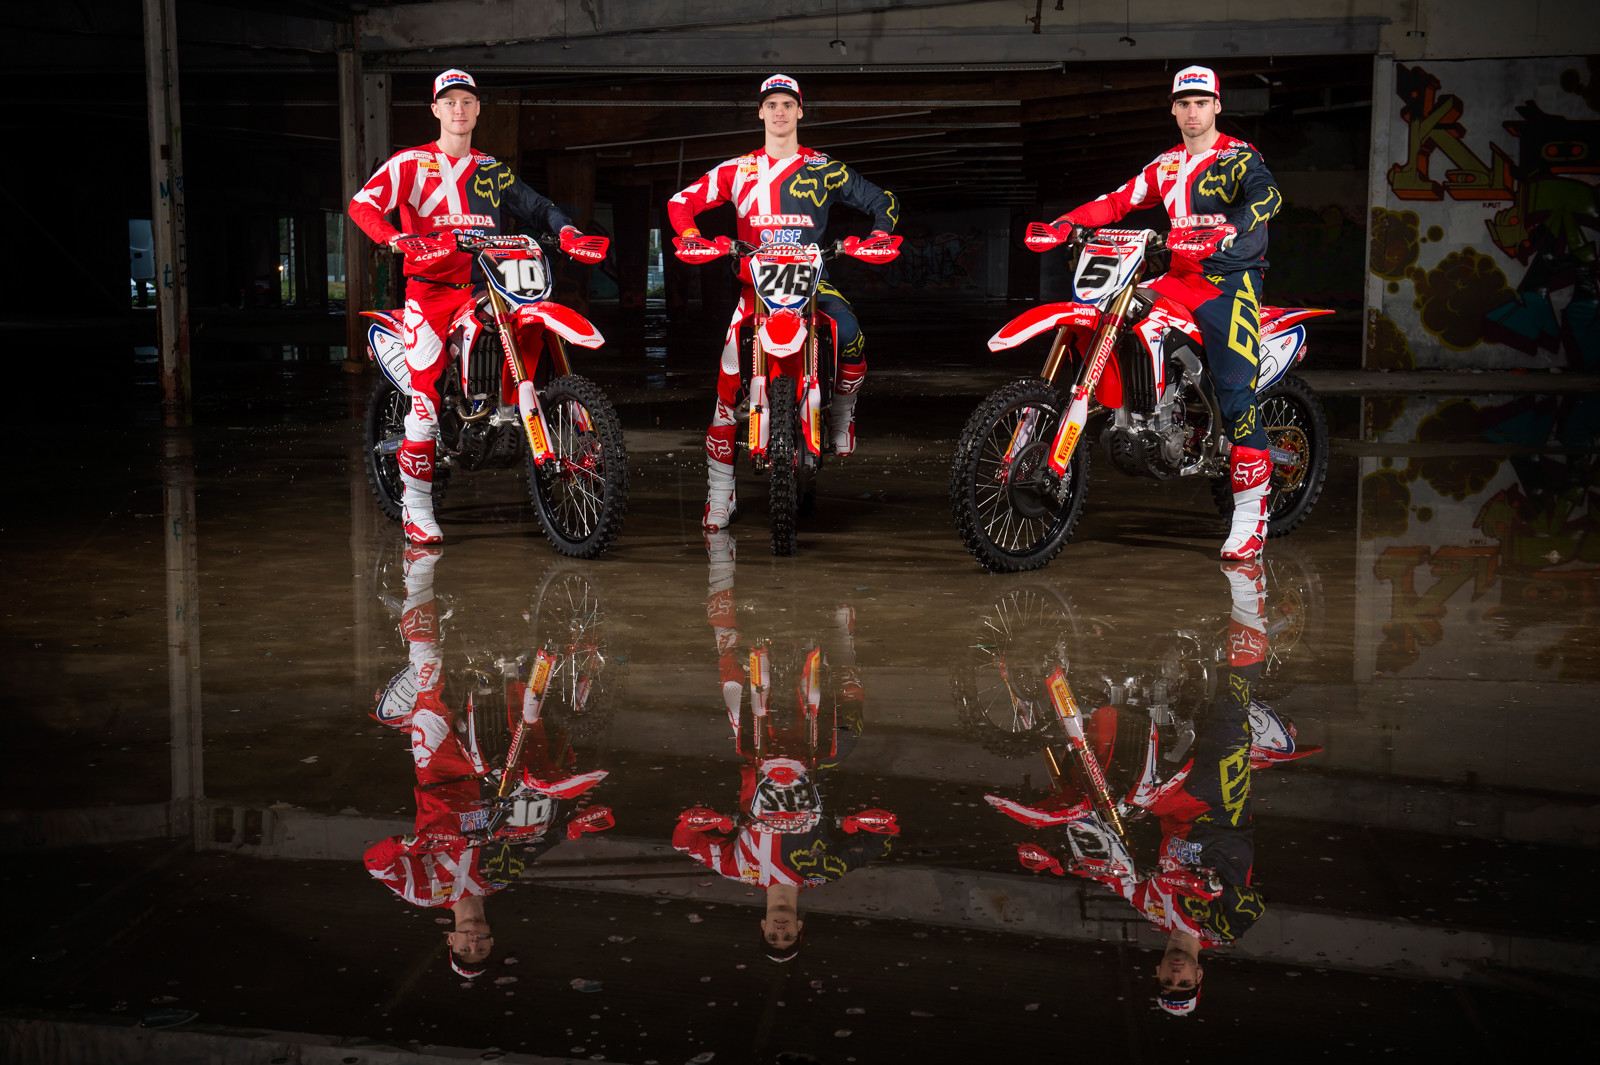 HRC's MX2 rider Calvin Vlaanderen on the left, center is prior MXGP champion Tim Gajser, and to his right is the team's other 450 rider Brian Bogers.